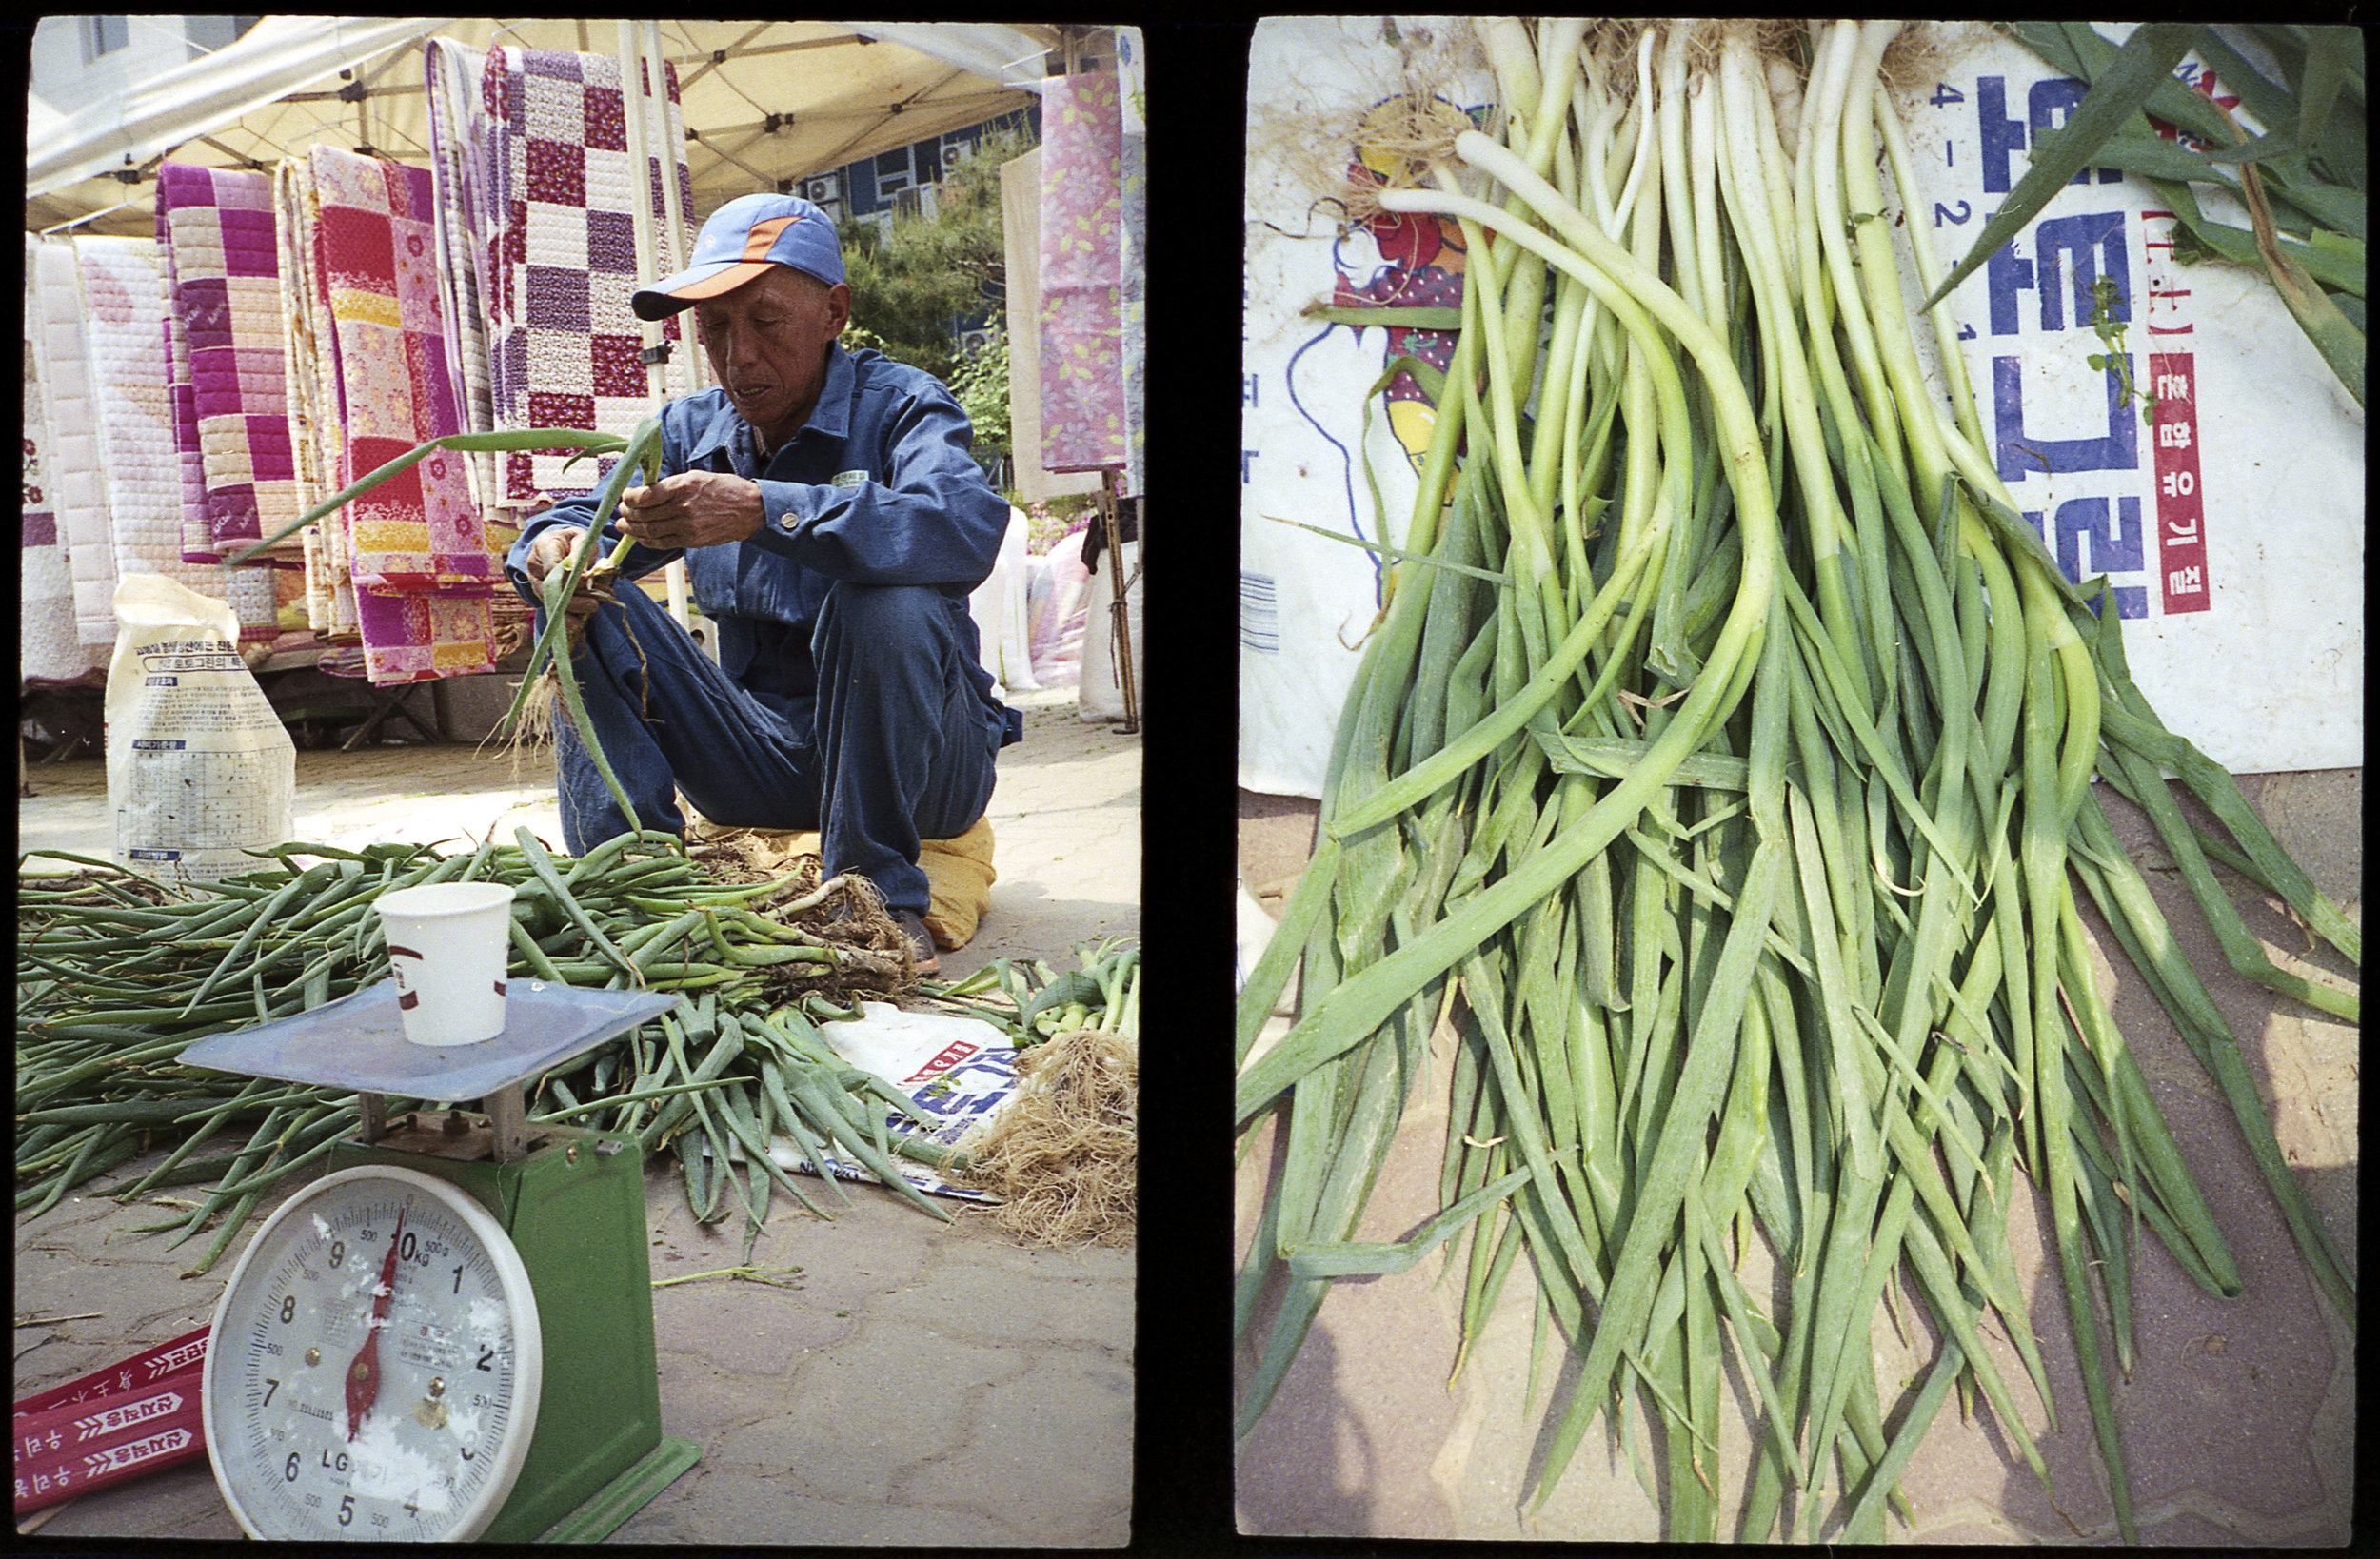 Scallions For Sale